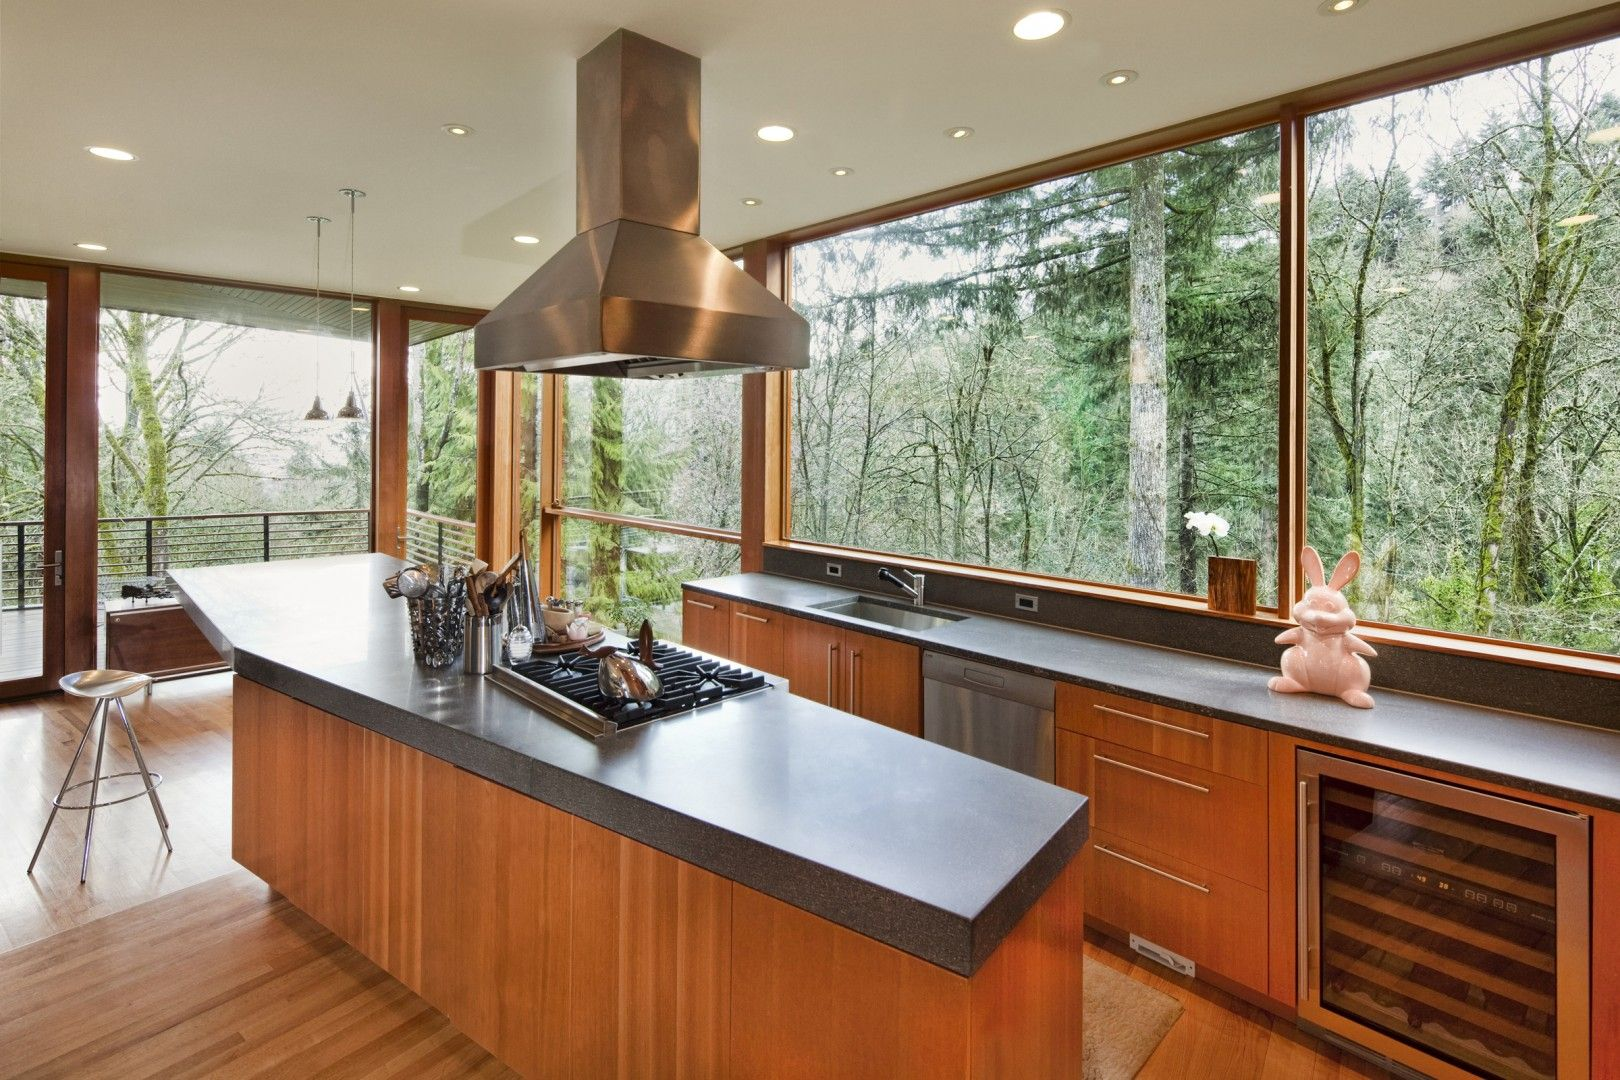 Kitchen Hoke House House Design Contemporary Building Contemporary House